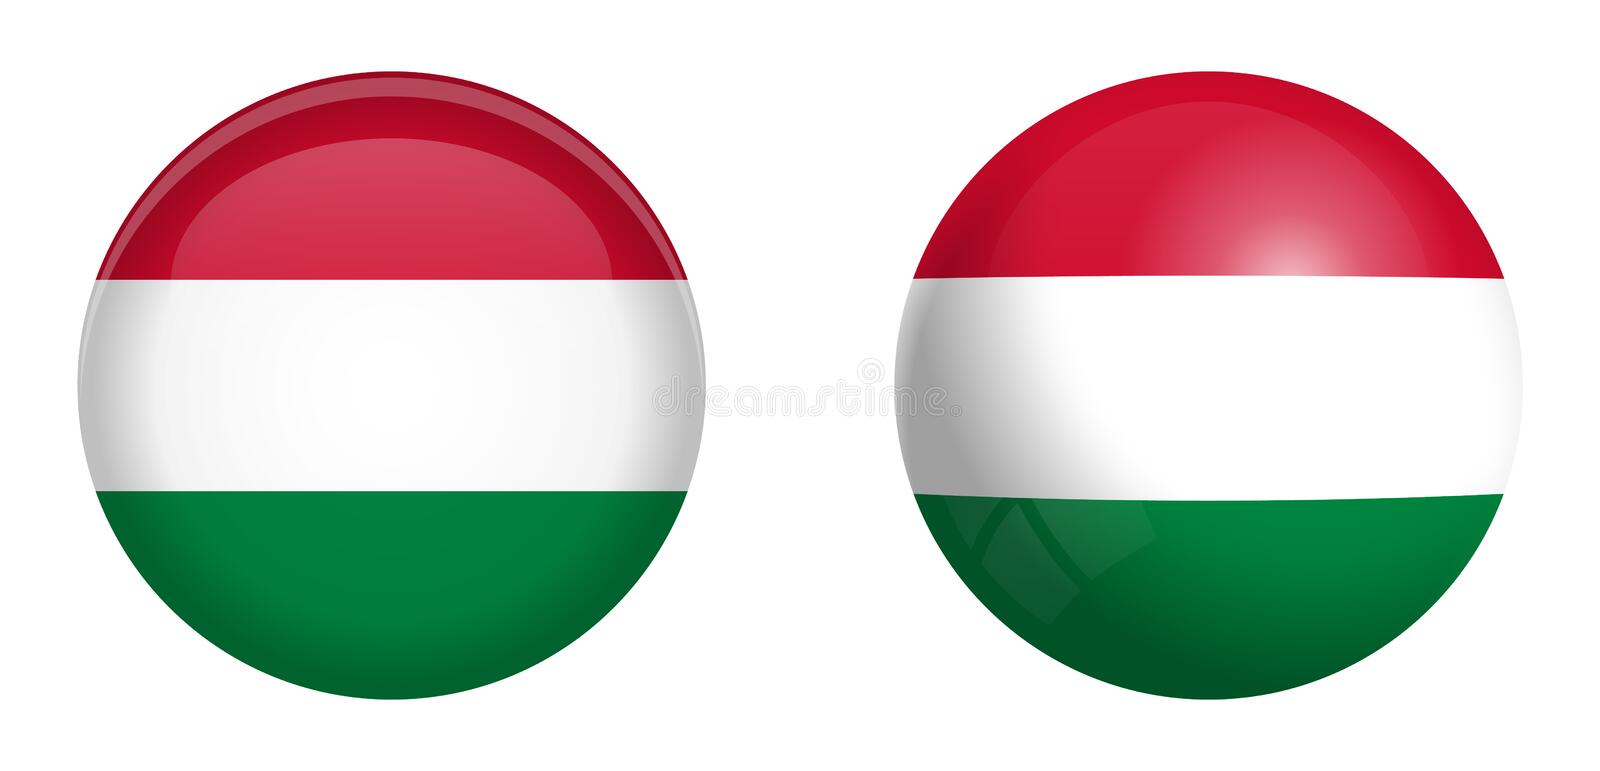 Hungary flag under 3d dome button and on glossy sphere / ball vector illustration